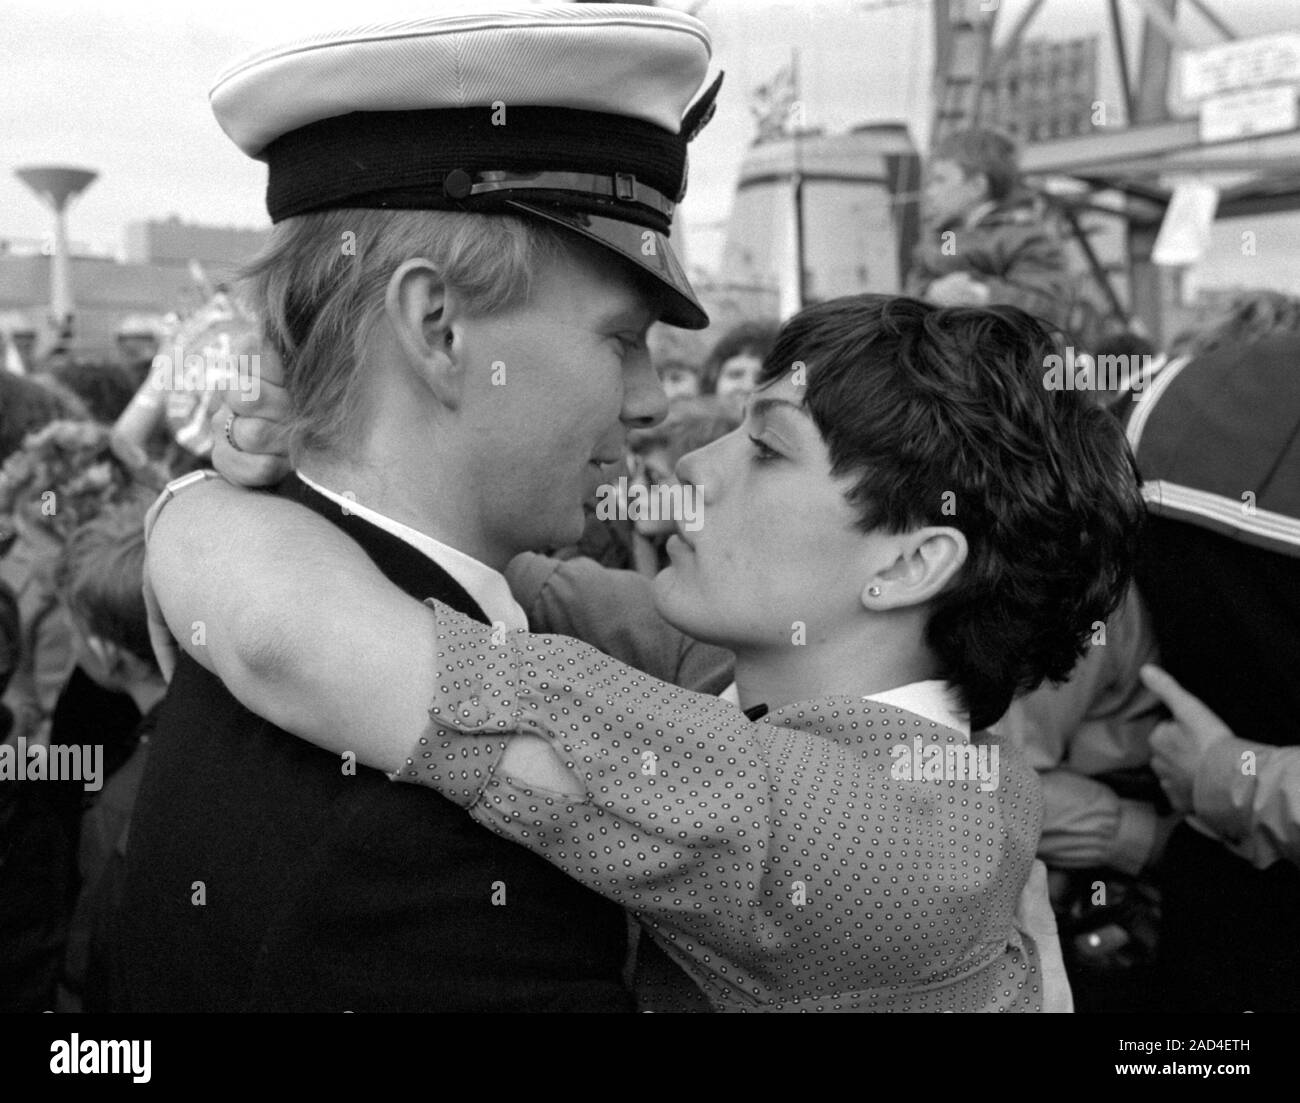 AJAXNETPHOTO. 19TH JUNE, 1982. PORTSMOUTH, ENGLAND. - FALKLANDS VETERAN - A YOUNG OFFICER  OFTHE SHEFFIELD CLASS (TYPE 42/1&2) DESTROYER HMS GLASGOW RECEIVES A WARM WELCOME HOME WHEN HIS BOMB DAMAGED SHIP RETURNED TO PORTSMOUTH IN 1982.  PHOTO:JONATHAN EASTLAND/AJAX.  REF:HD NA GLAS 82 8A. Stock Photo